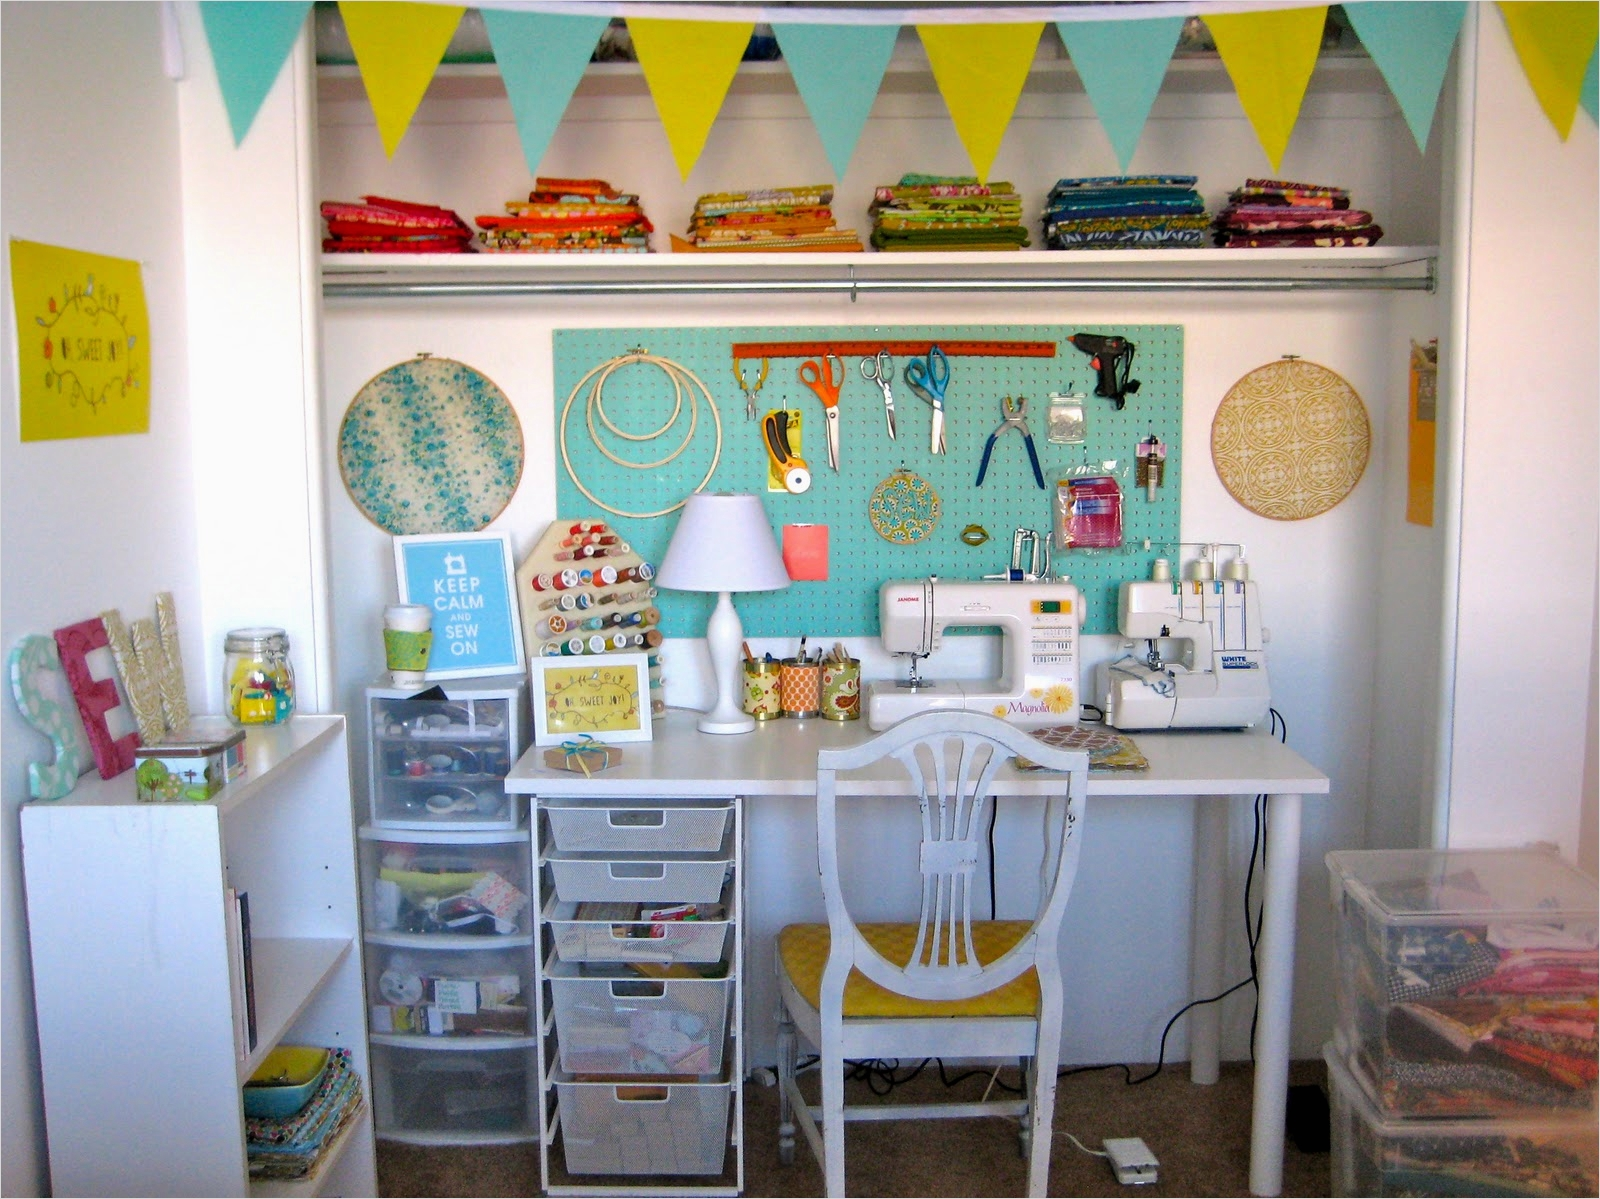 Sewing Room Ideas for Small Spaces 72 Reader Request Sewing Room Ideas 9